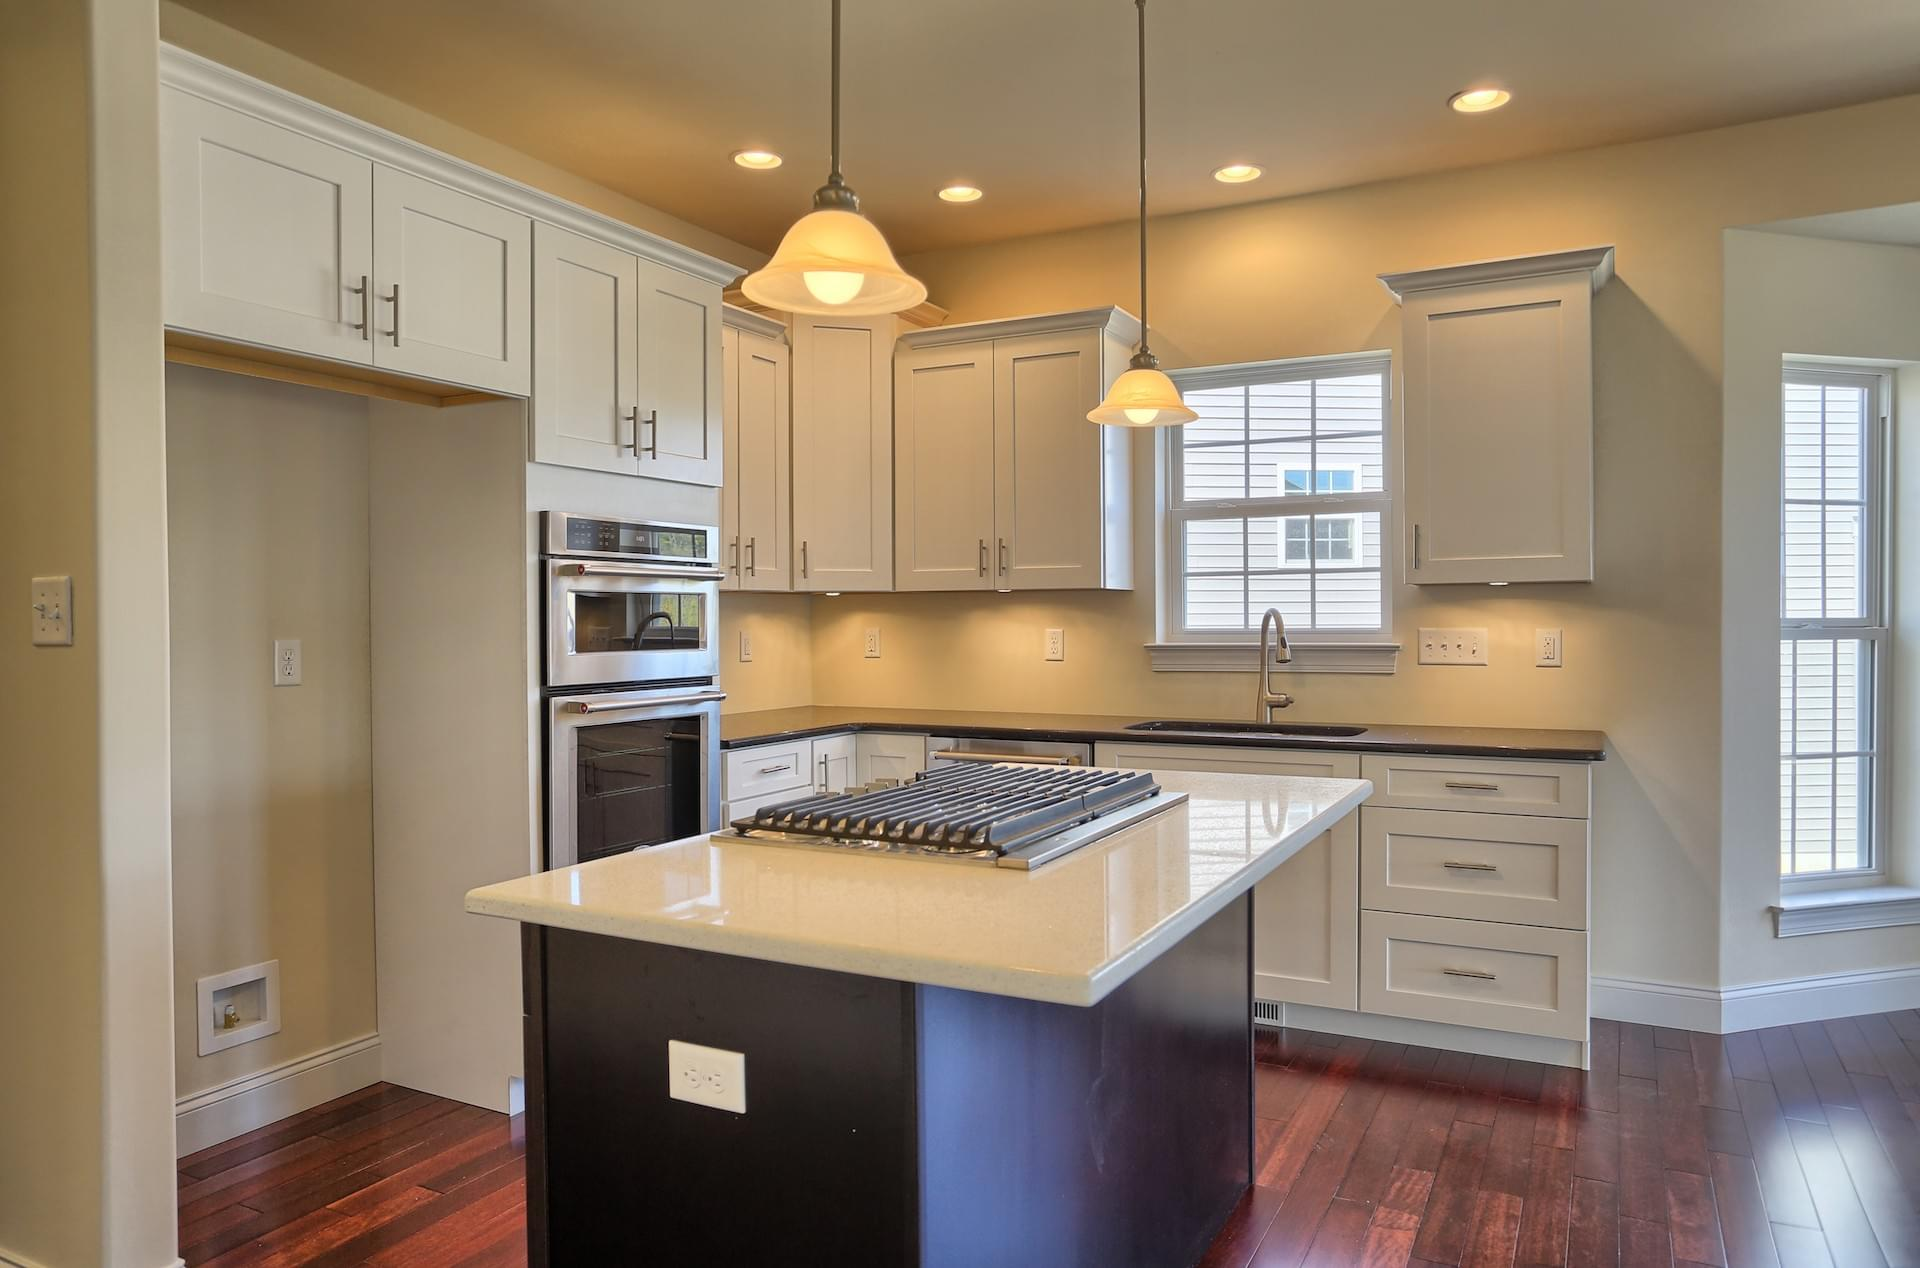 2br New Home in State College, PA